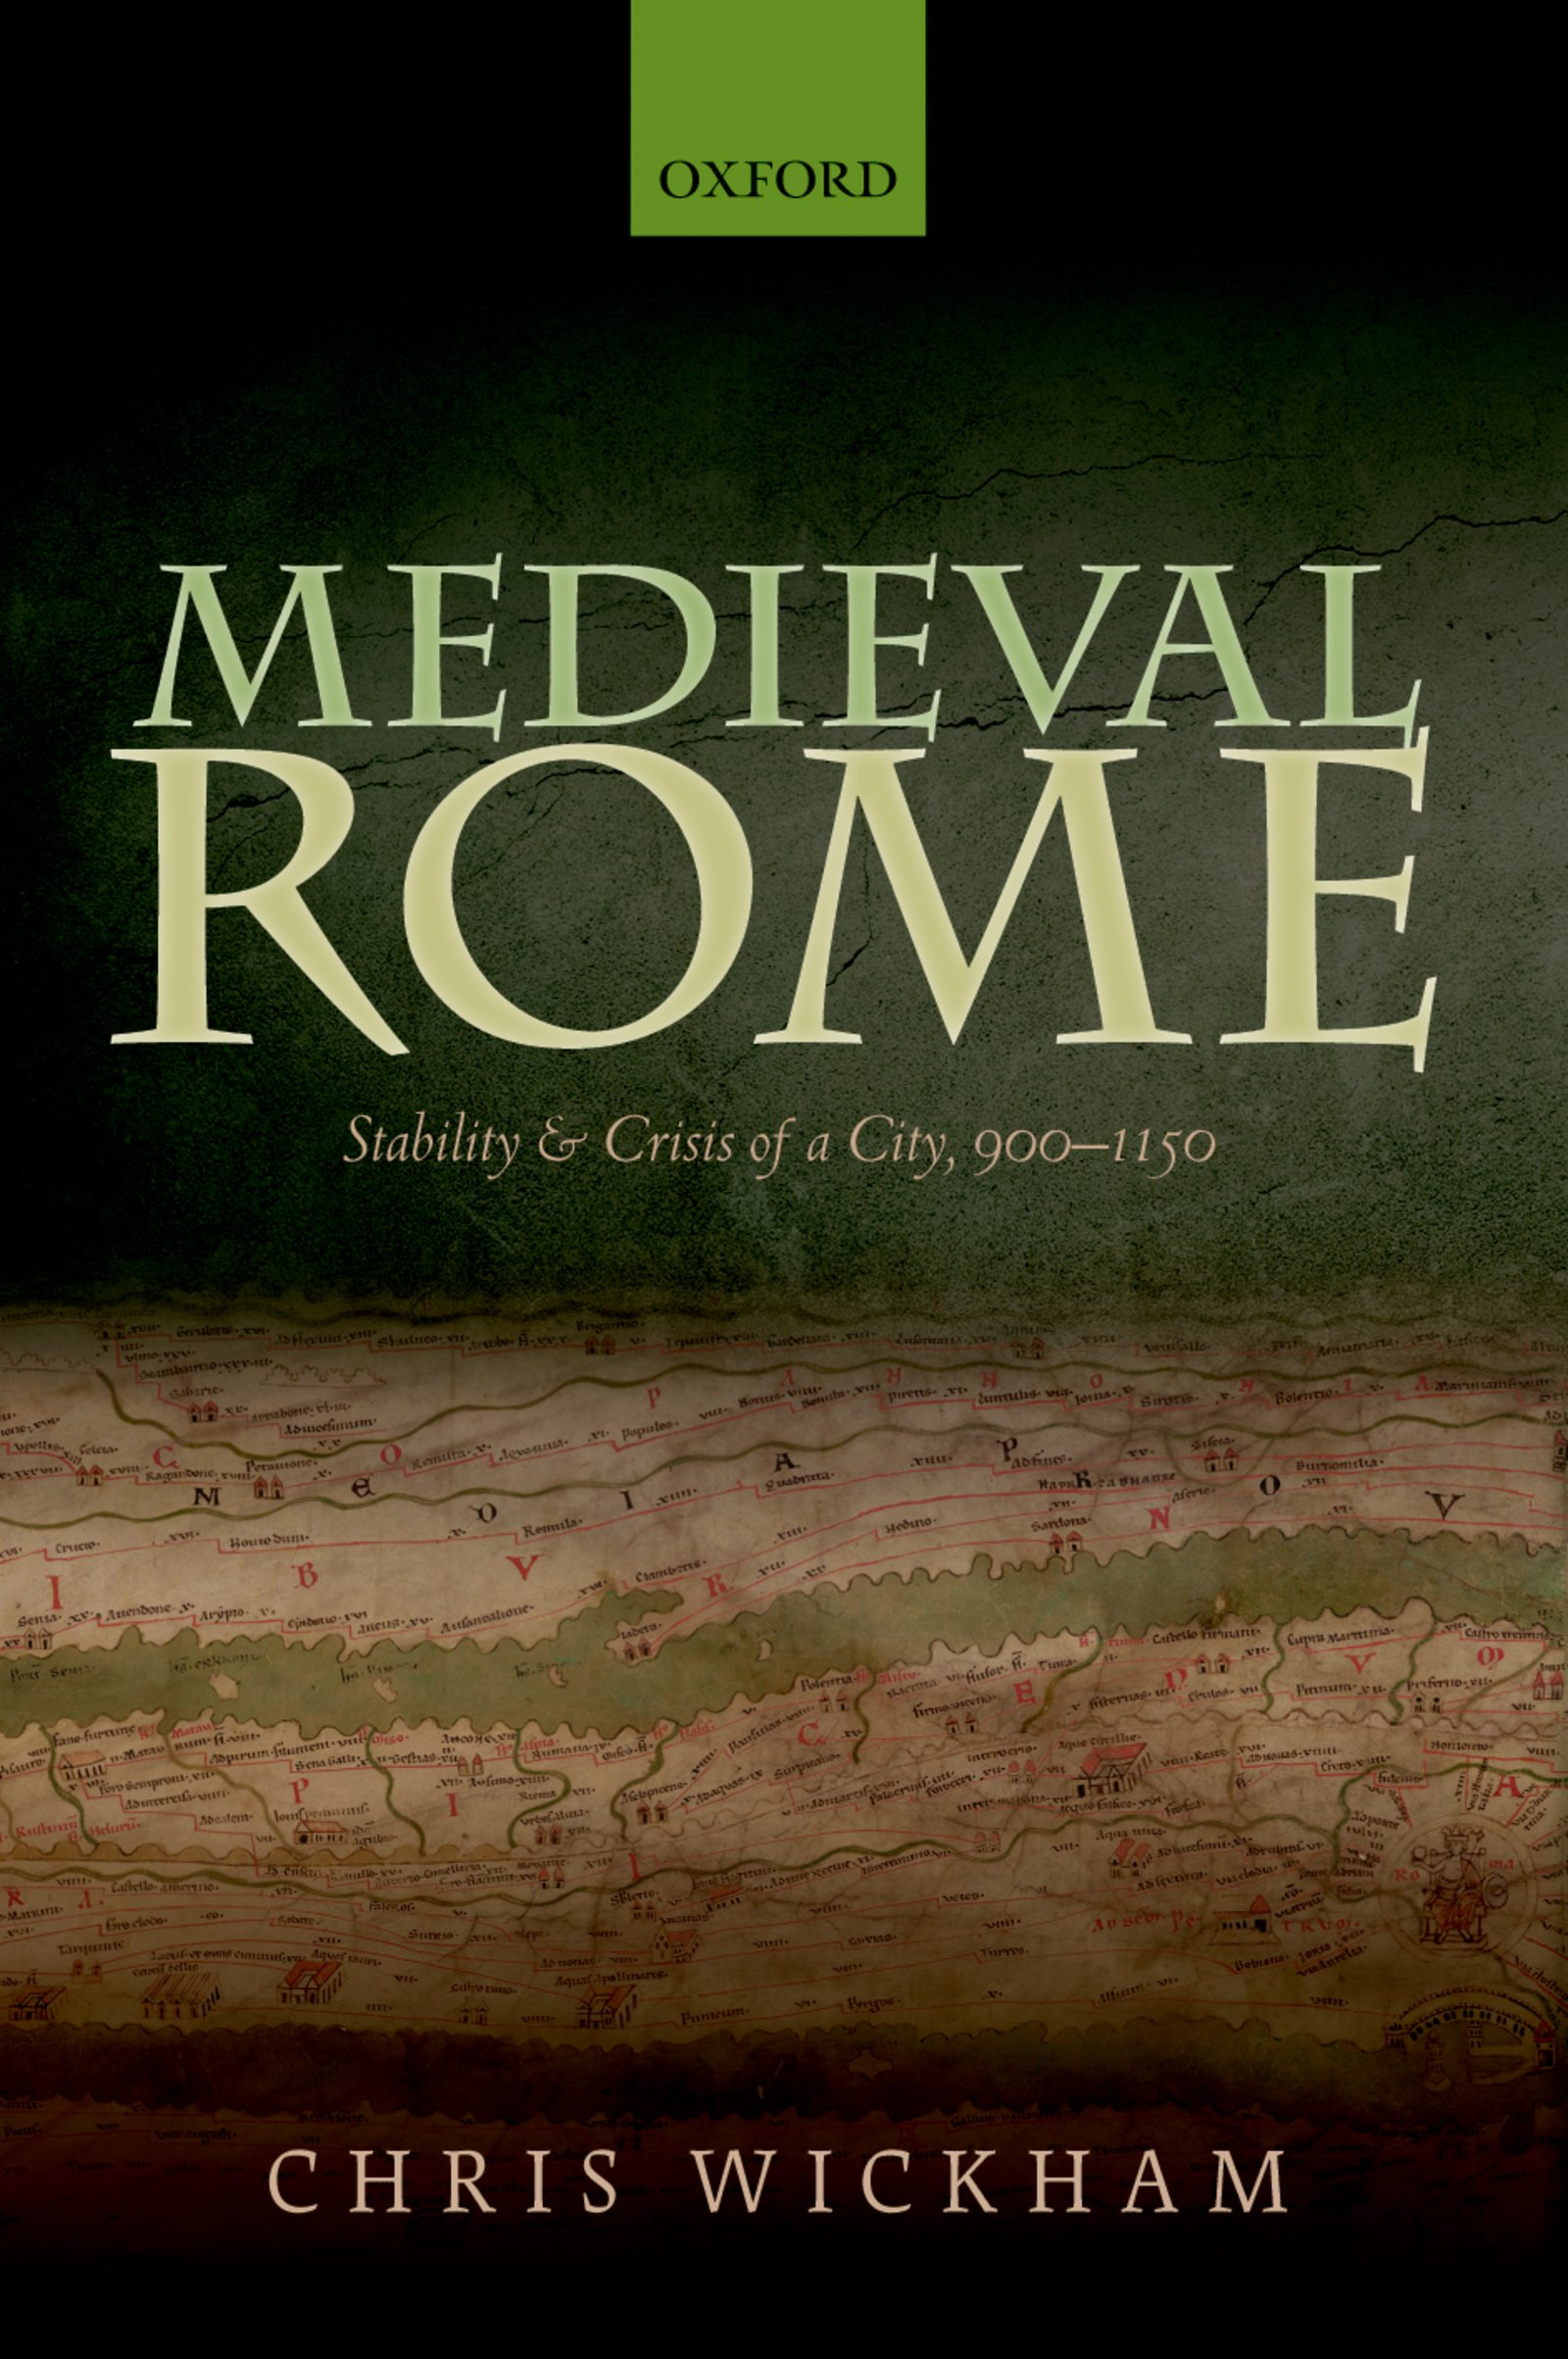 Download Ebook Medieval Rome by Chris Wickham Pdf